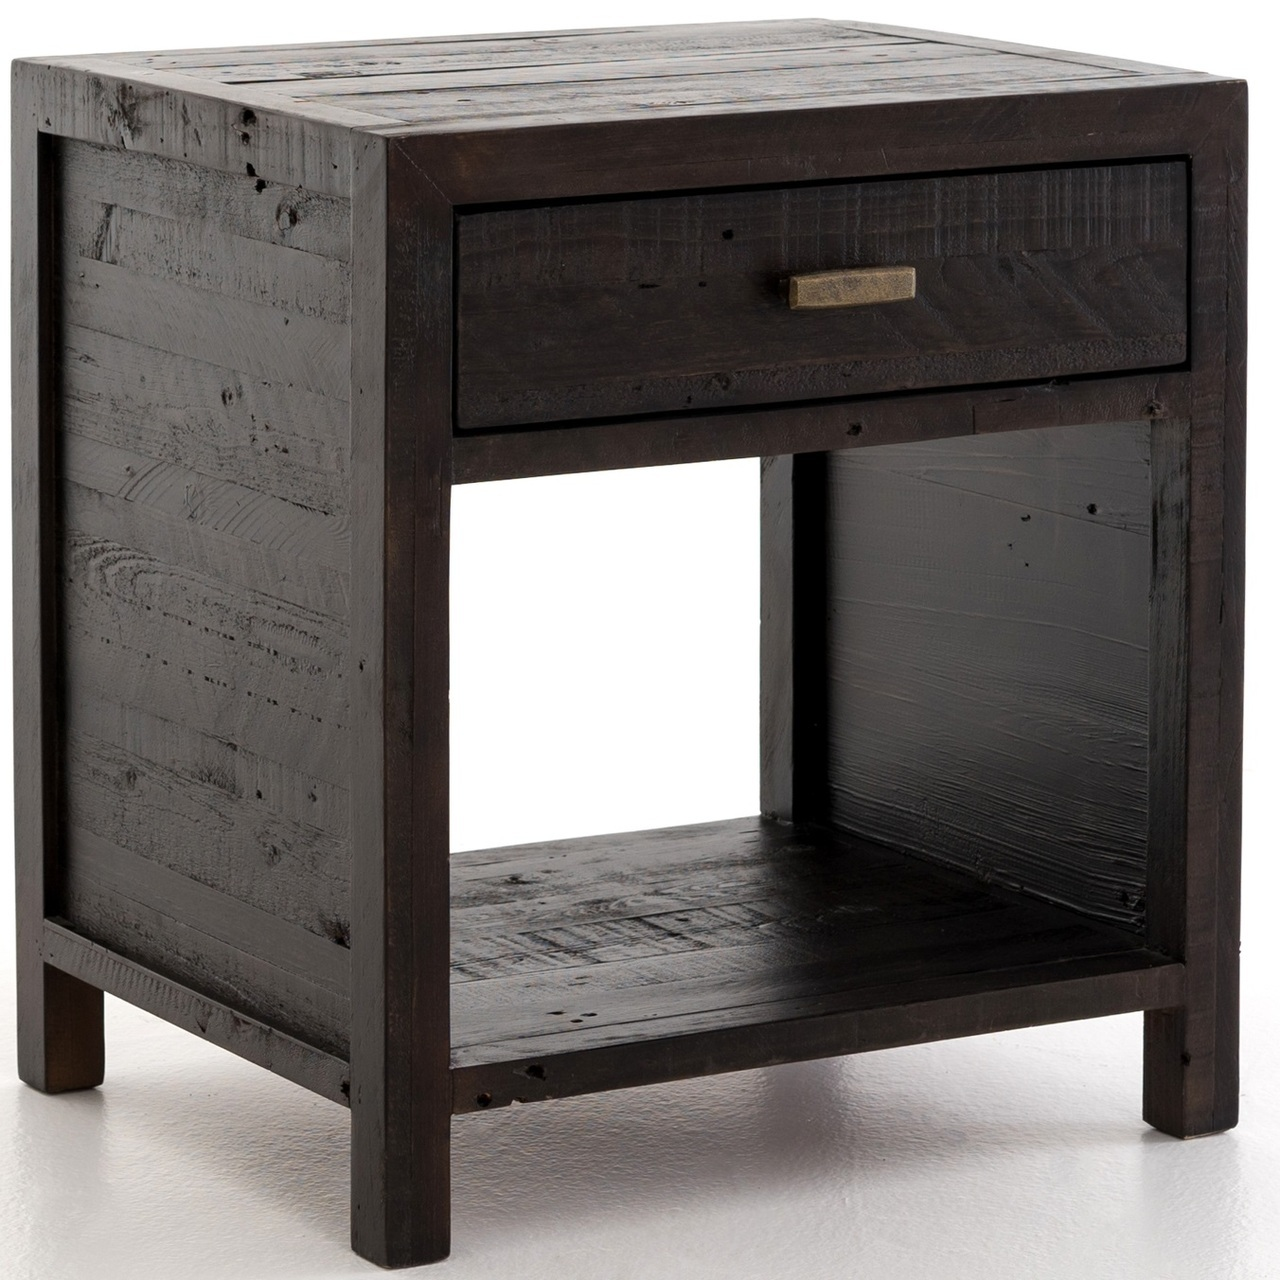 caminito dark carbon reclaimed wood end table zin home vcna prm storage tables black smoked glass outdoor wicker furniture with fire pit silver and gold console ashley trunk